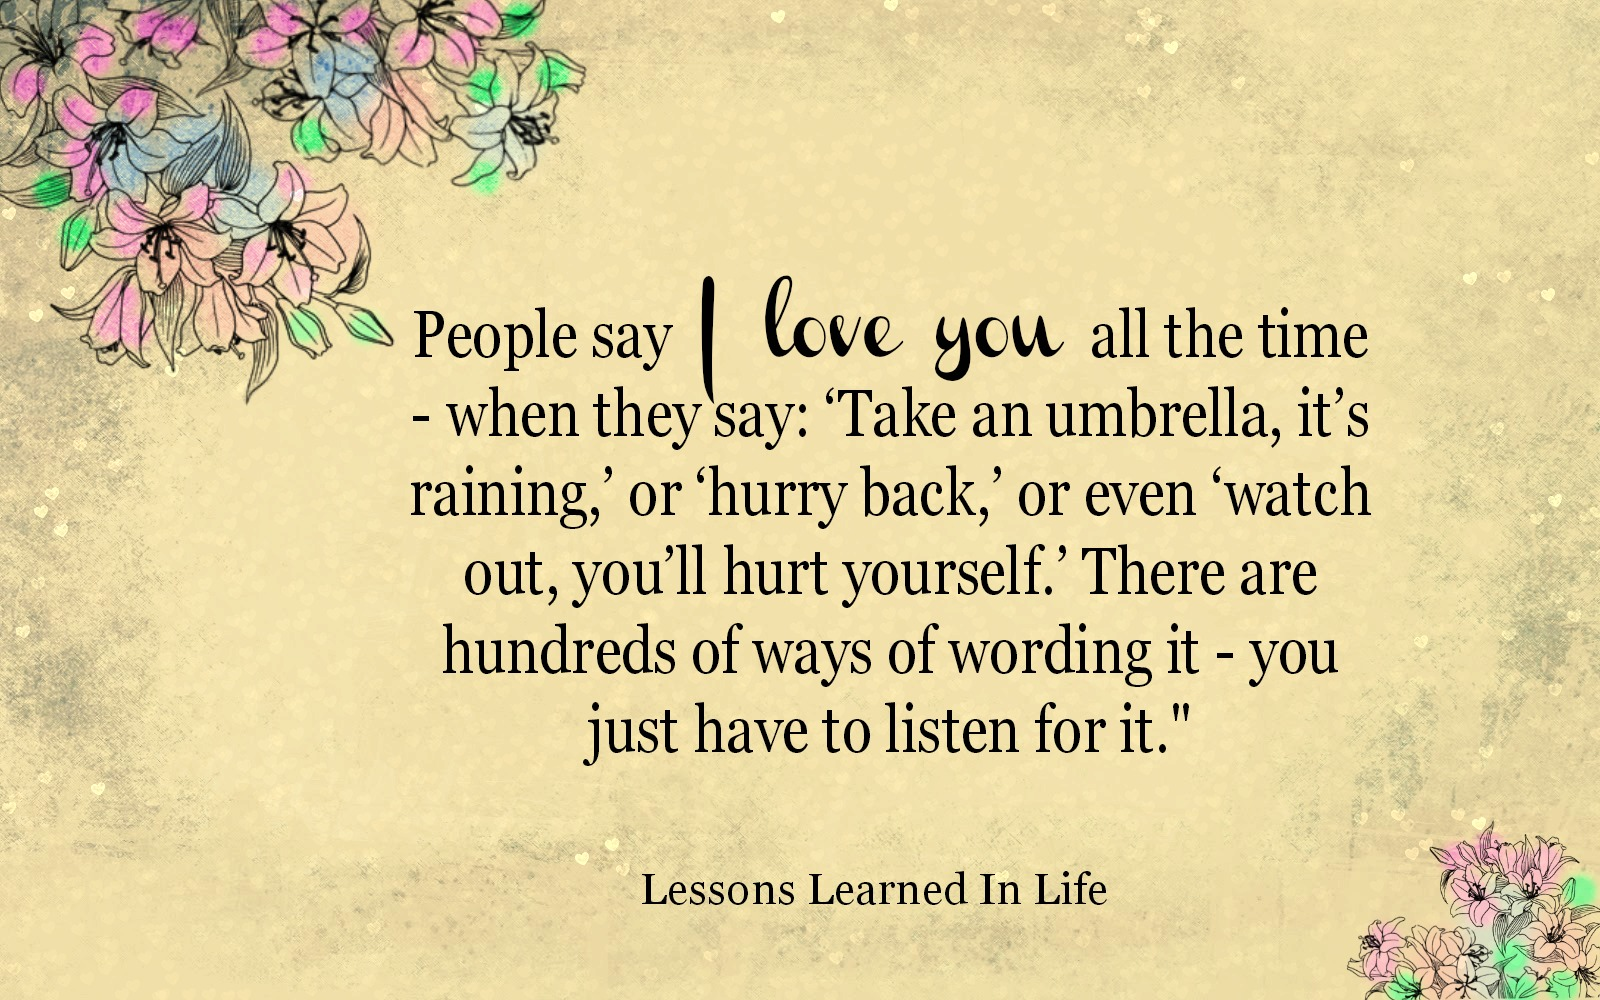 Quotes About Life And Love And Lessons Lessons Learned In Lifeyou Just Have To Listen For It Lessons